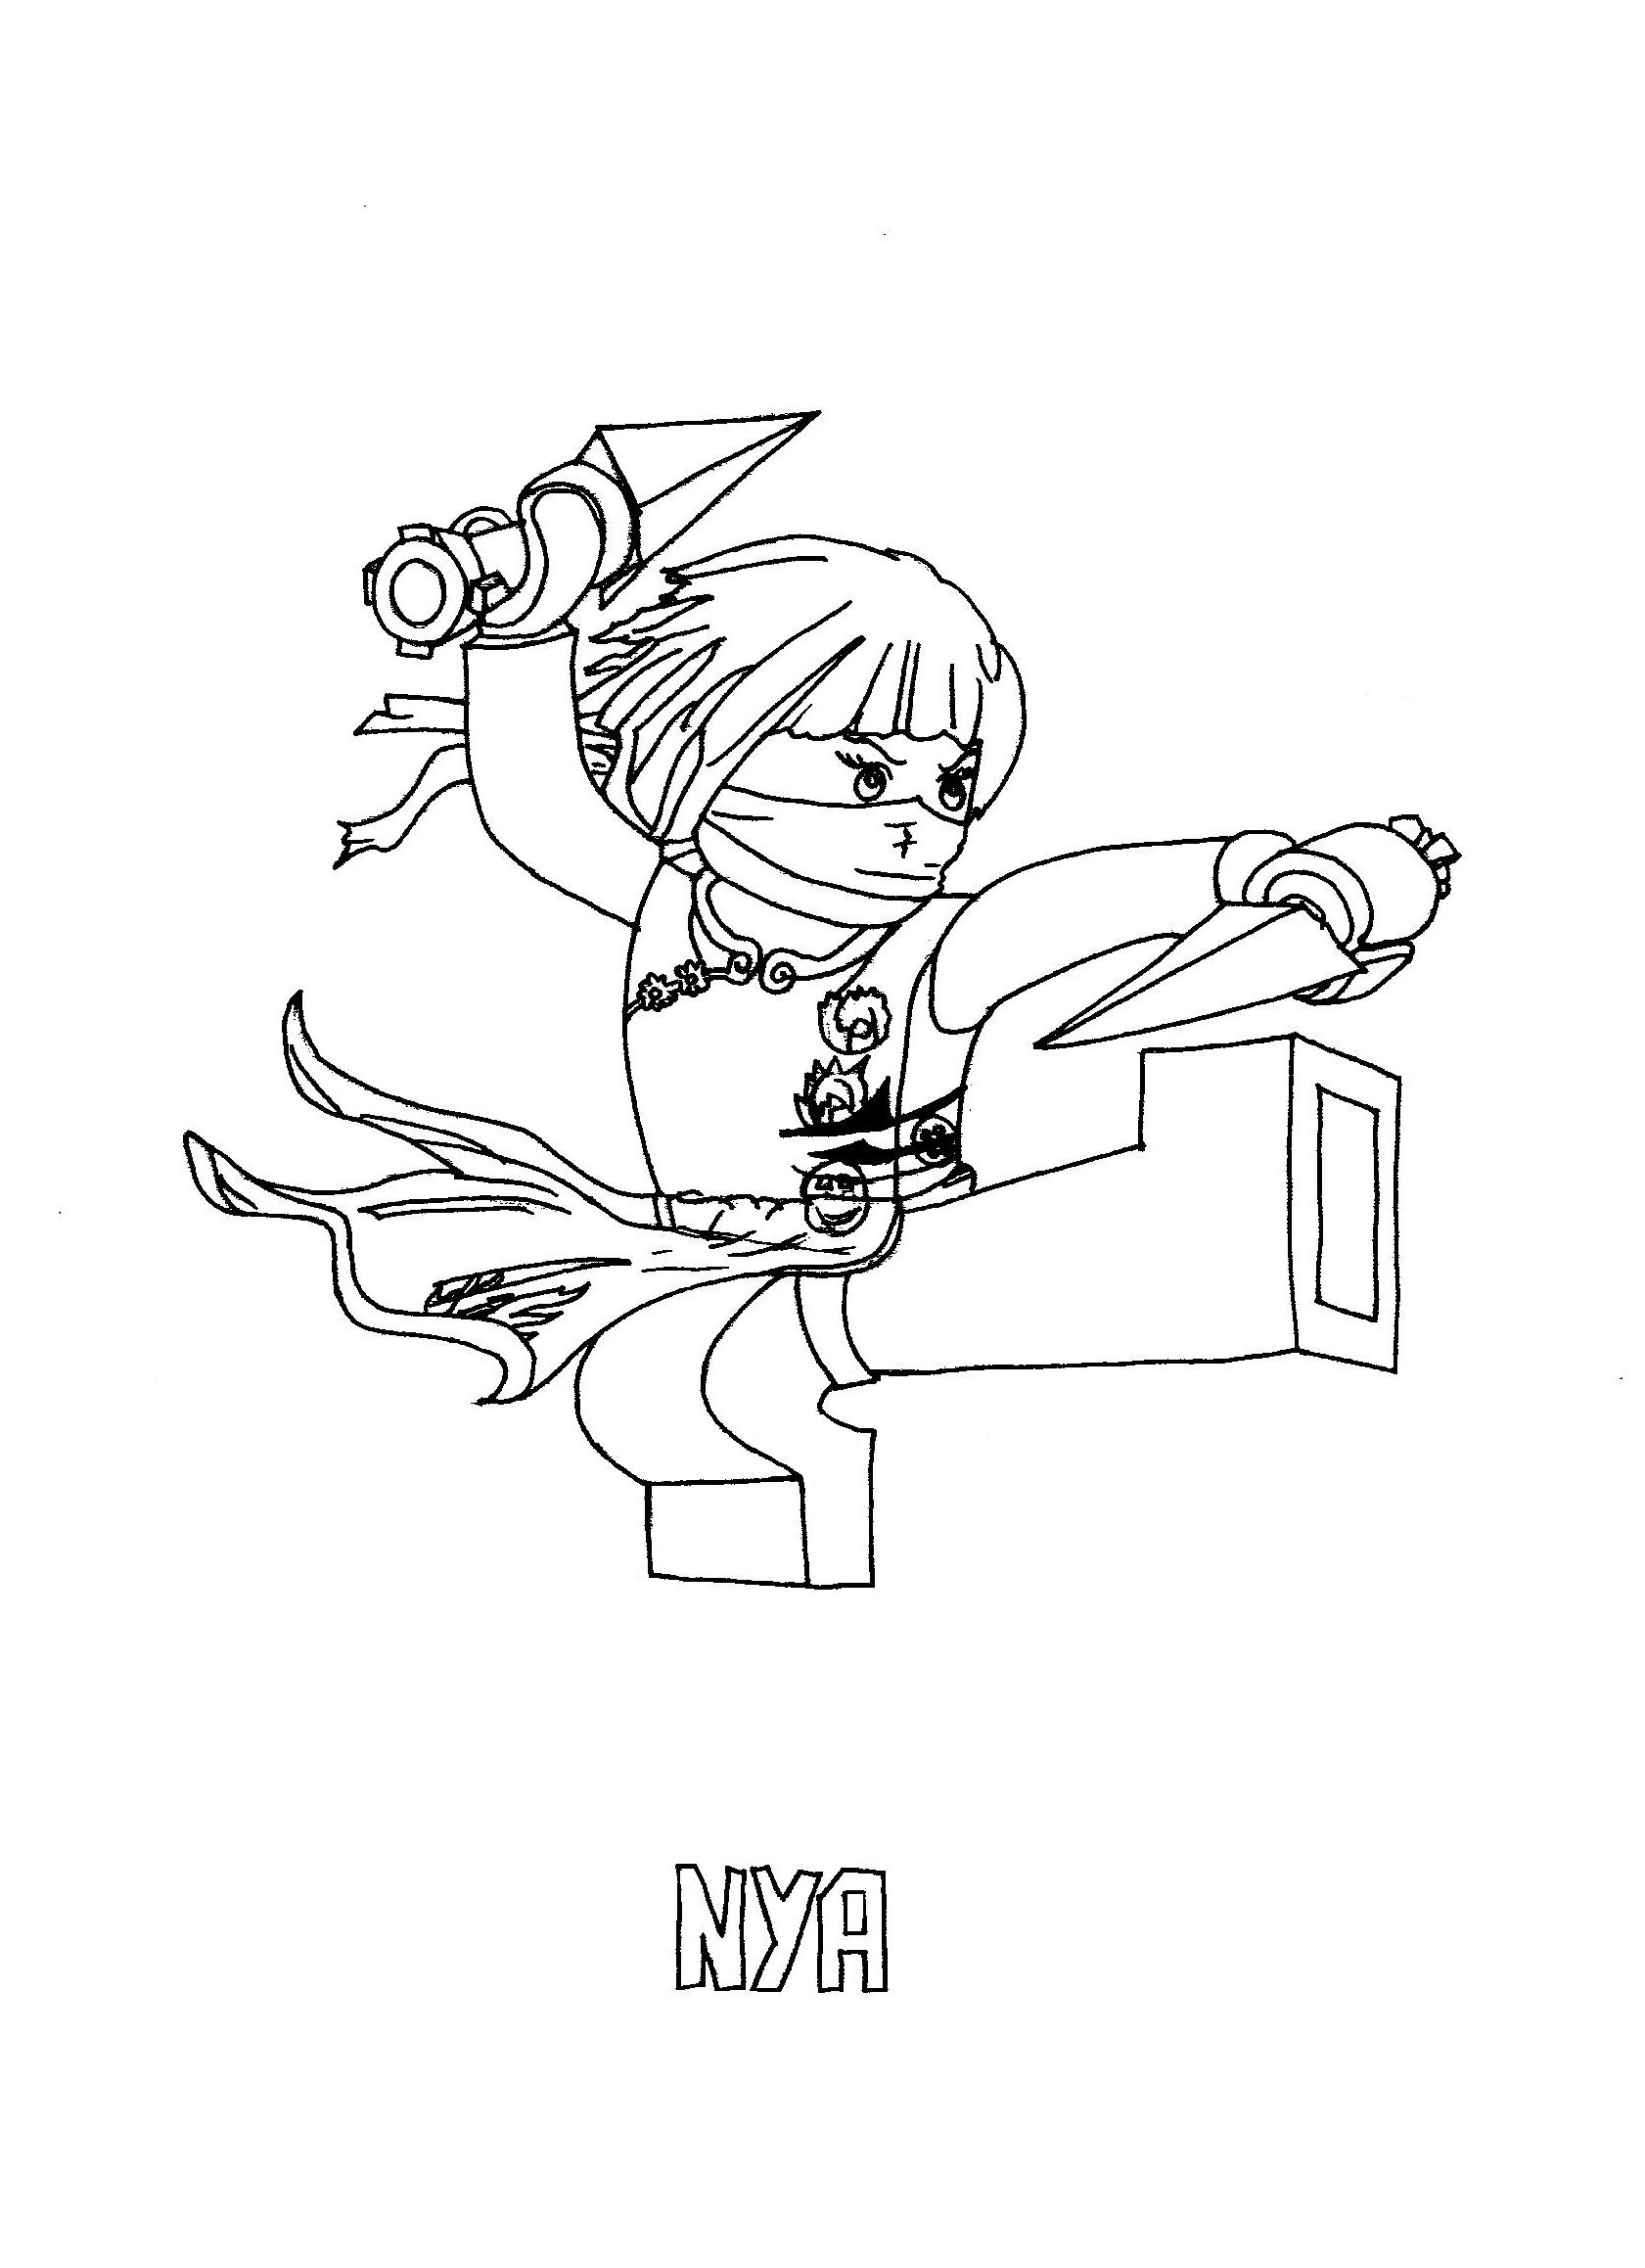 Free Printable Ninjago Coloring Pages For Kids Lego Coloring Pages Ninjago Coloring Pages Cartoon Coloring Pages